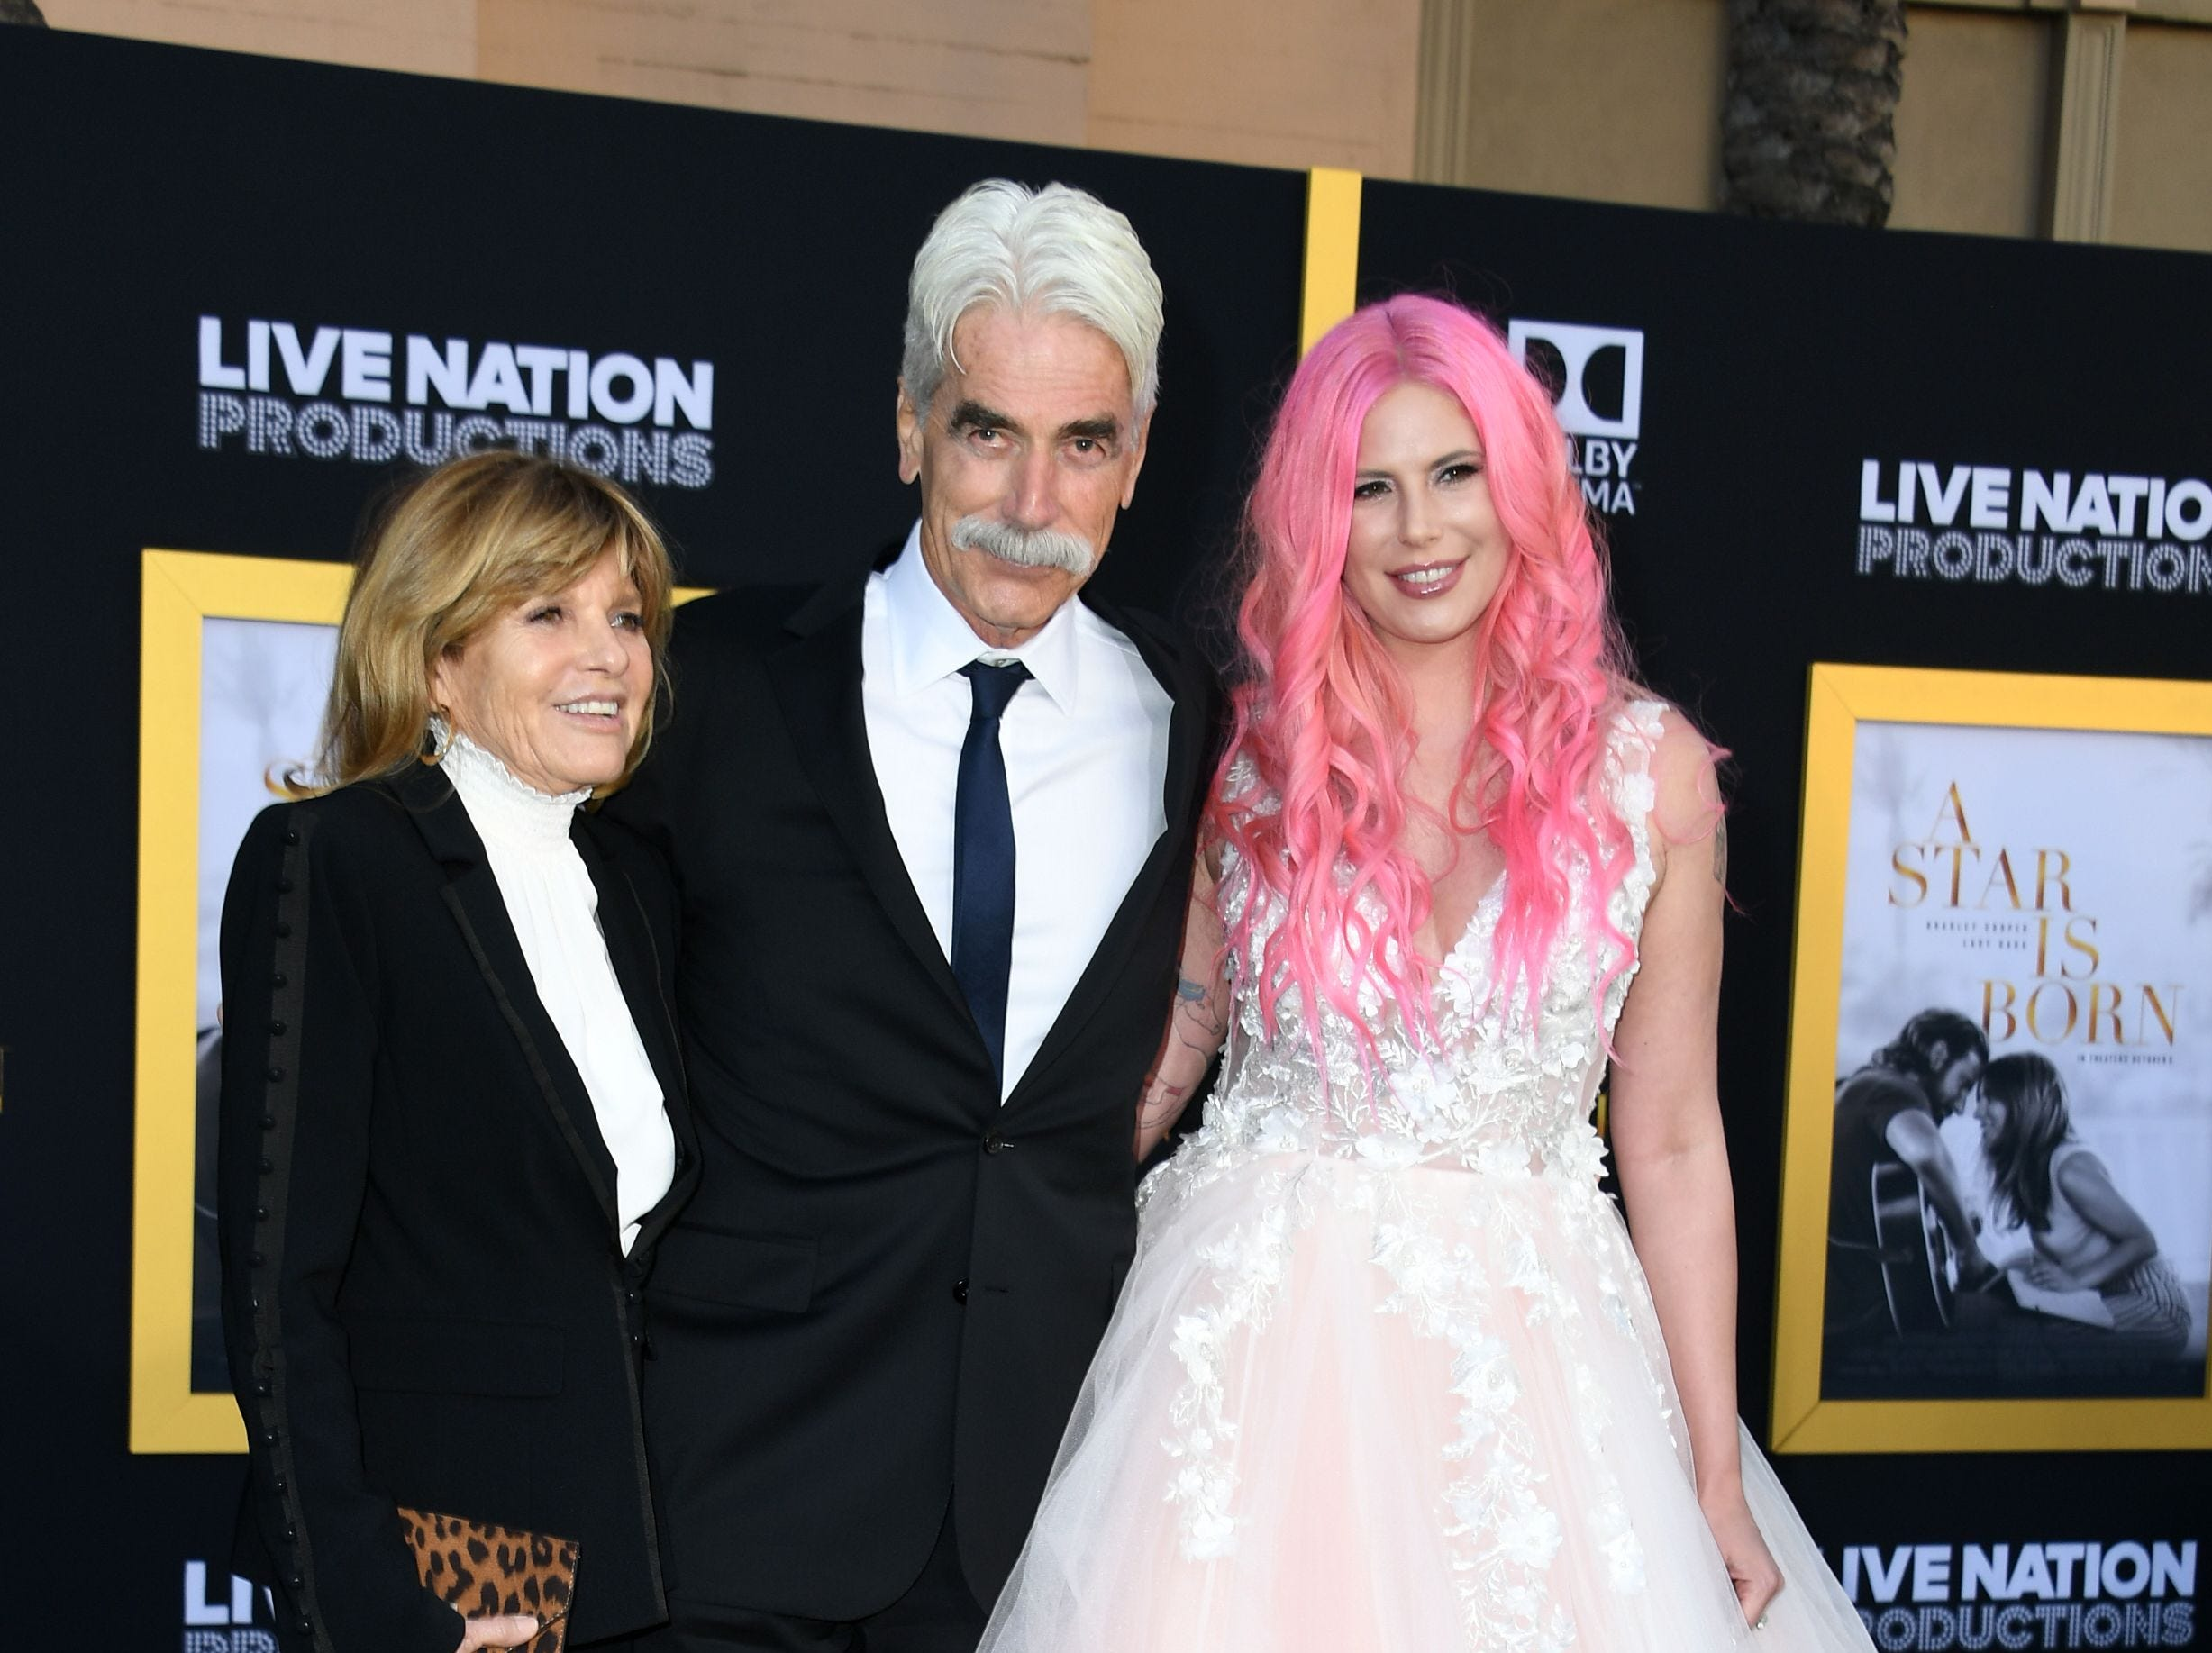 "(L-R) Actress Katharine Ross, actor Sam Elliott and their daughter musician Cleo Rose Elliott attend the premiere of ""A star is born"" at the Shrine Auditorium in Los Angeles, California on September 24, 2018. (Photo by VALERIE MACON / AFP)VALERIE MACON/AFP/Getty Images ORG XMIT: Premiere ORIG FILE ID: AFP_19E5WK"